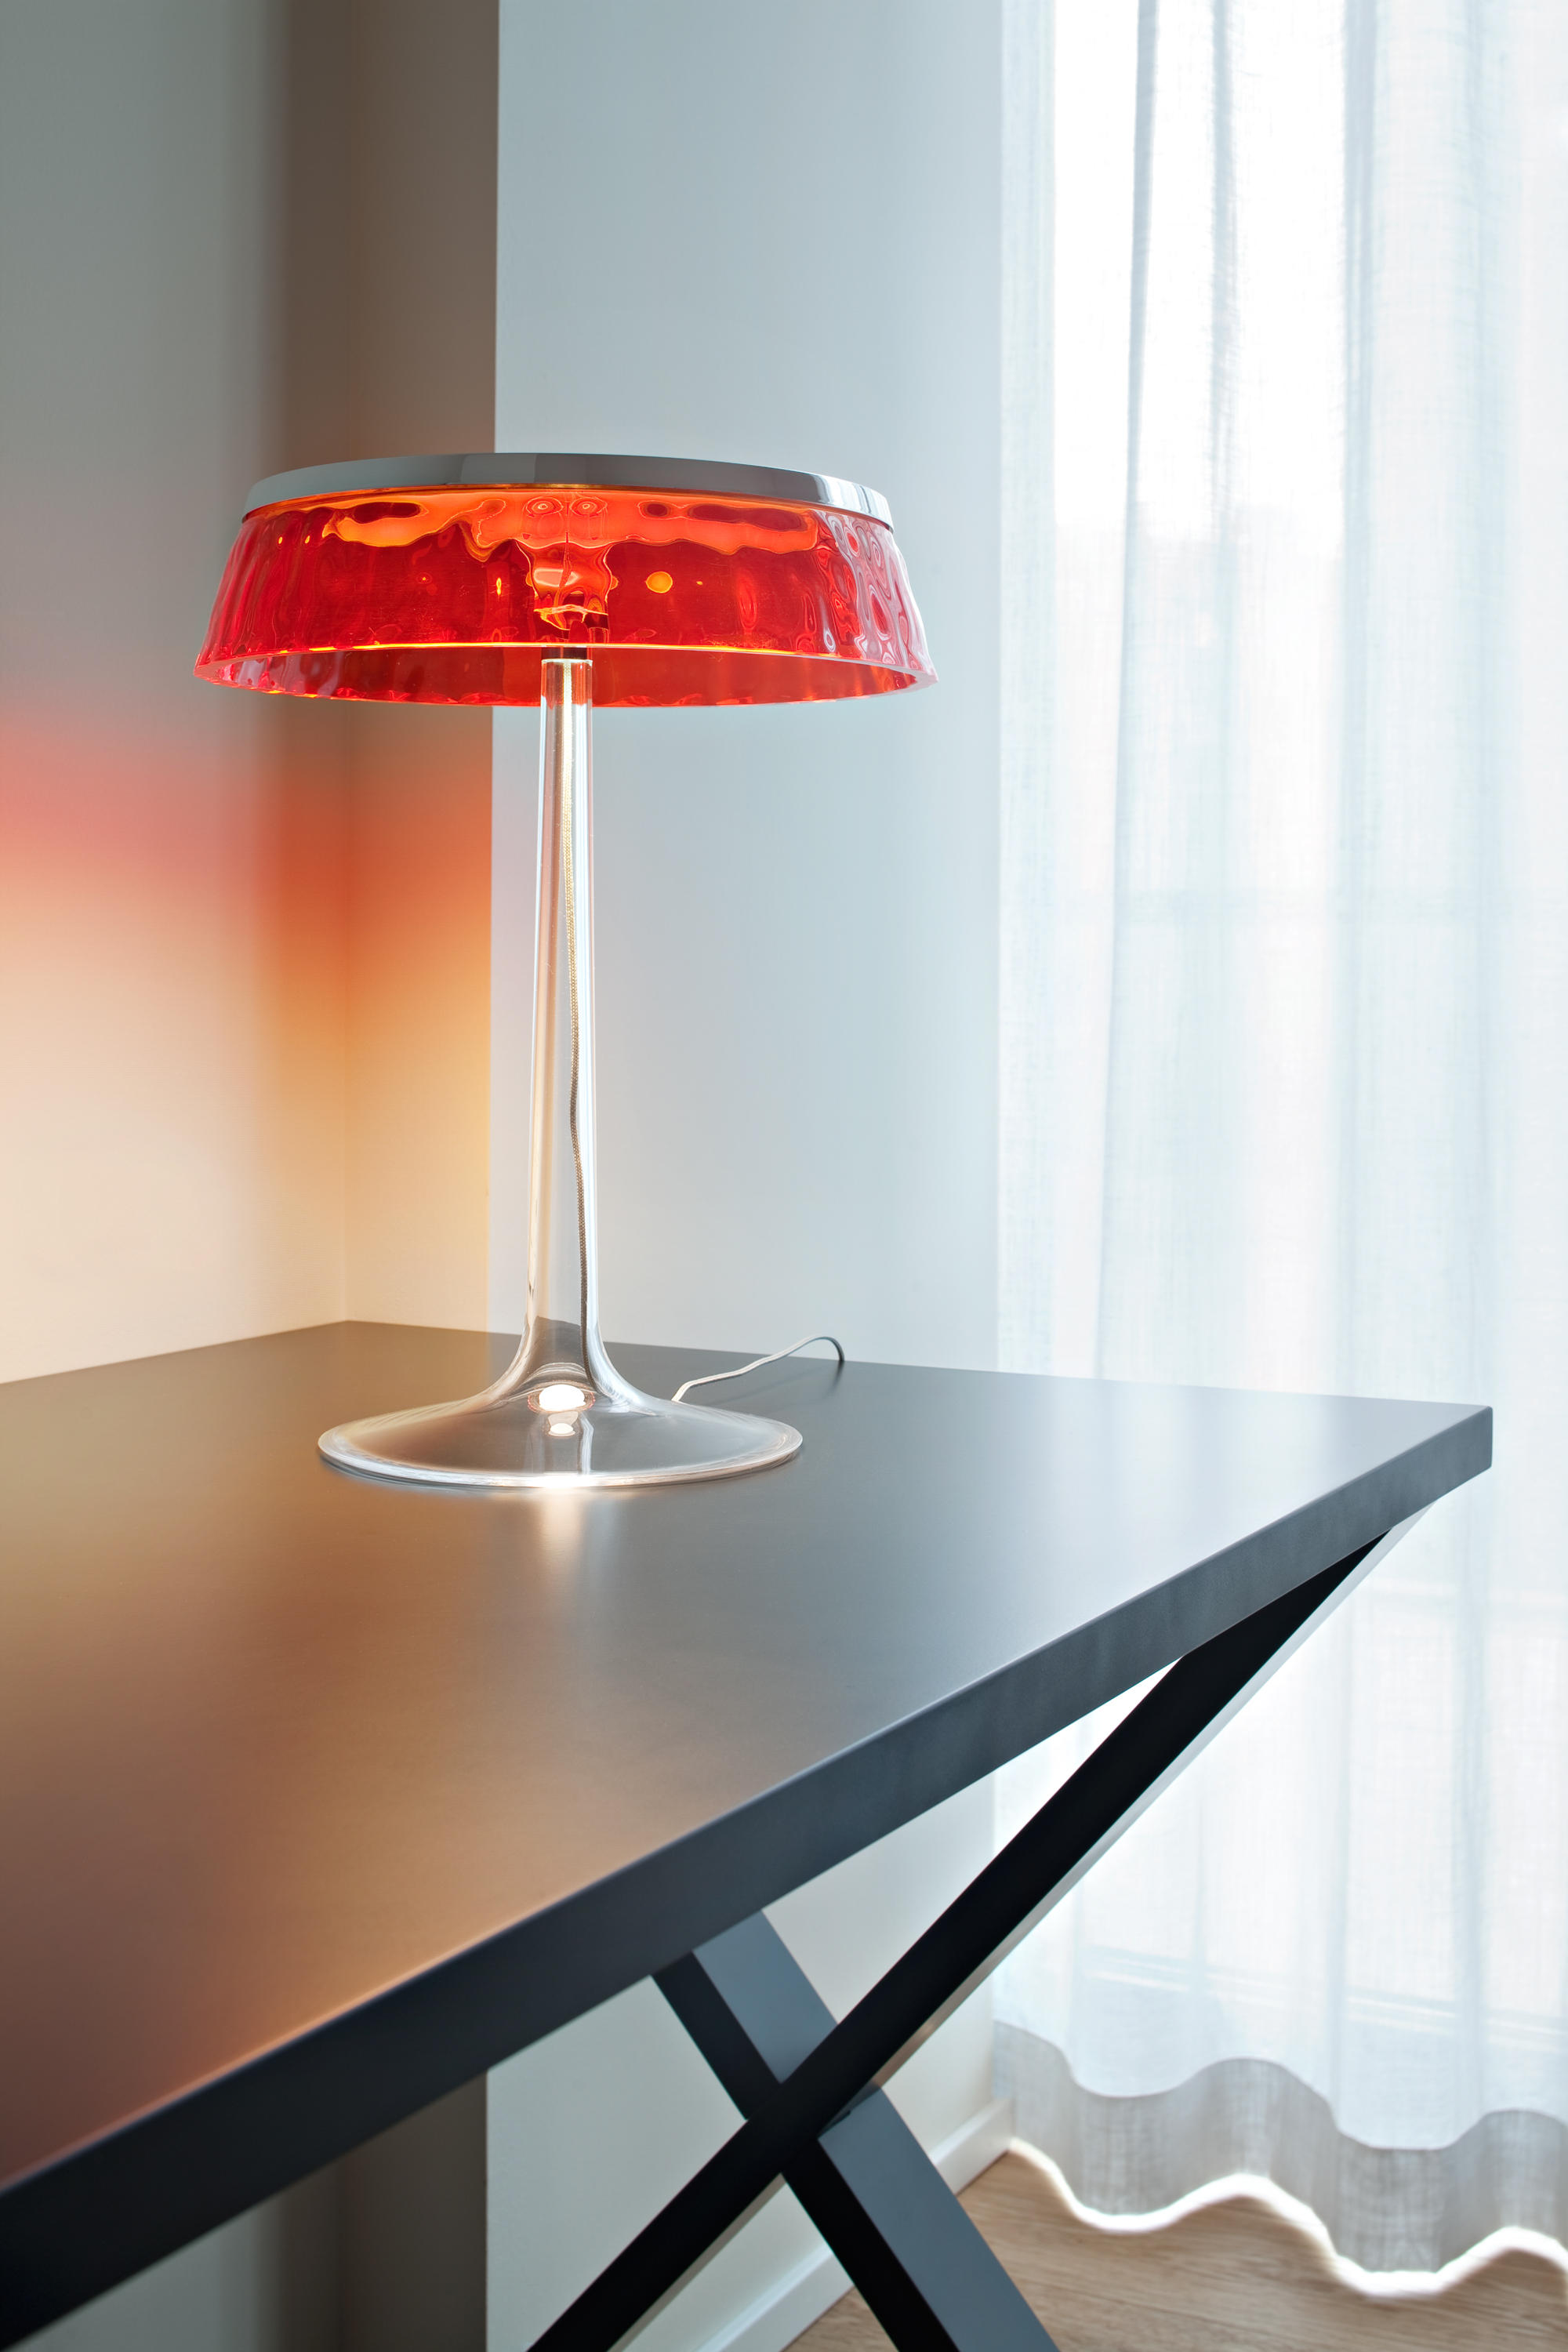 Flos Lampen Bon Jour - Table Lights From Flos | Architonic